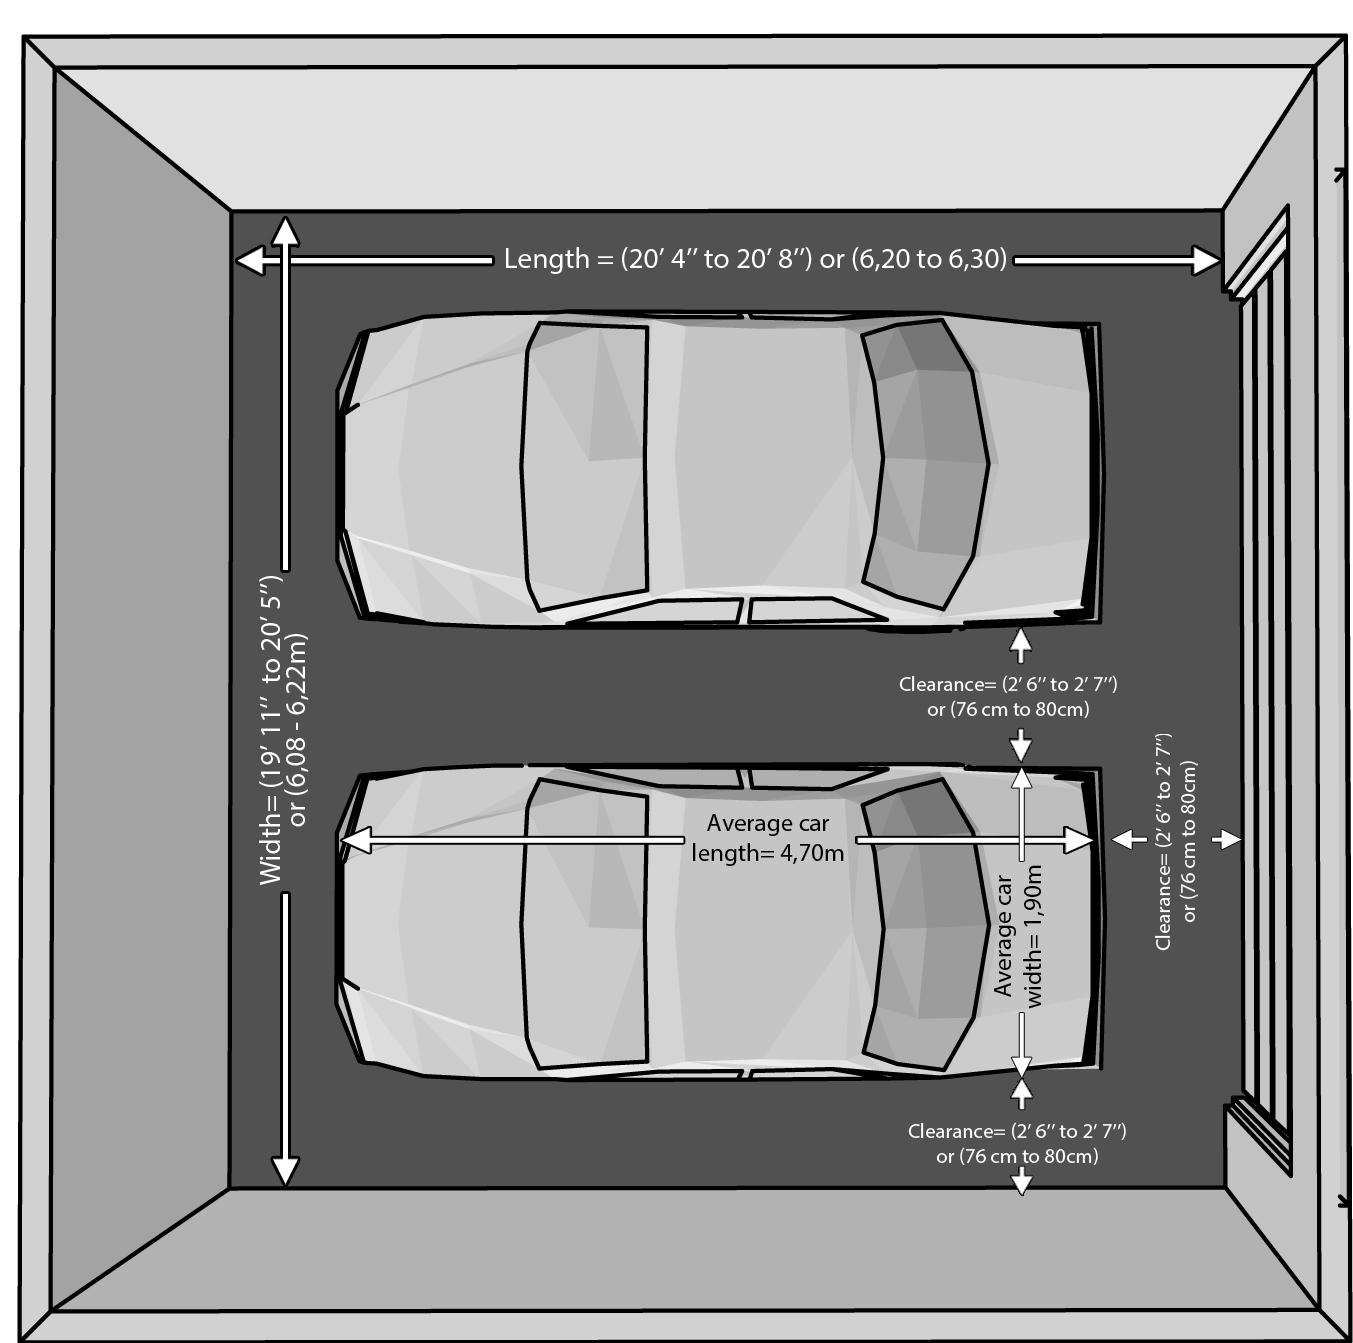 The dimensions of an one car and a two car garage Standard double garage door size